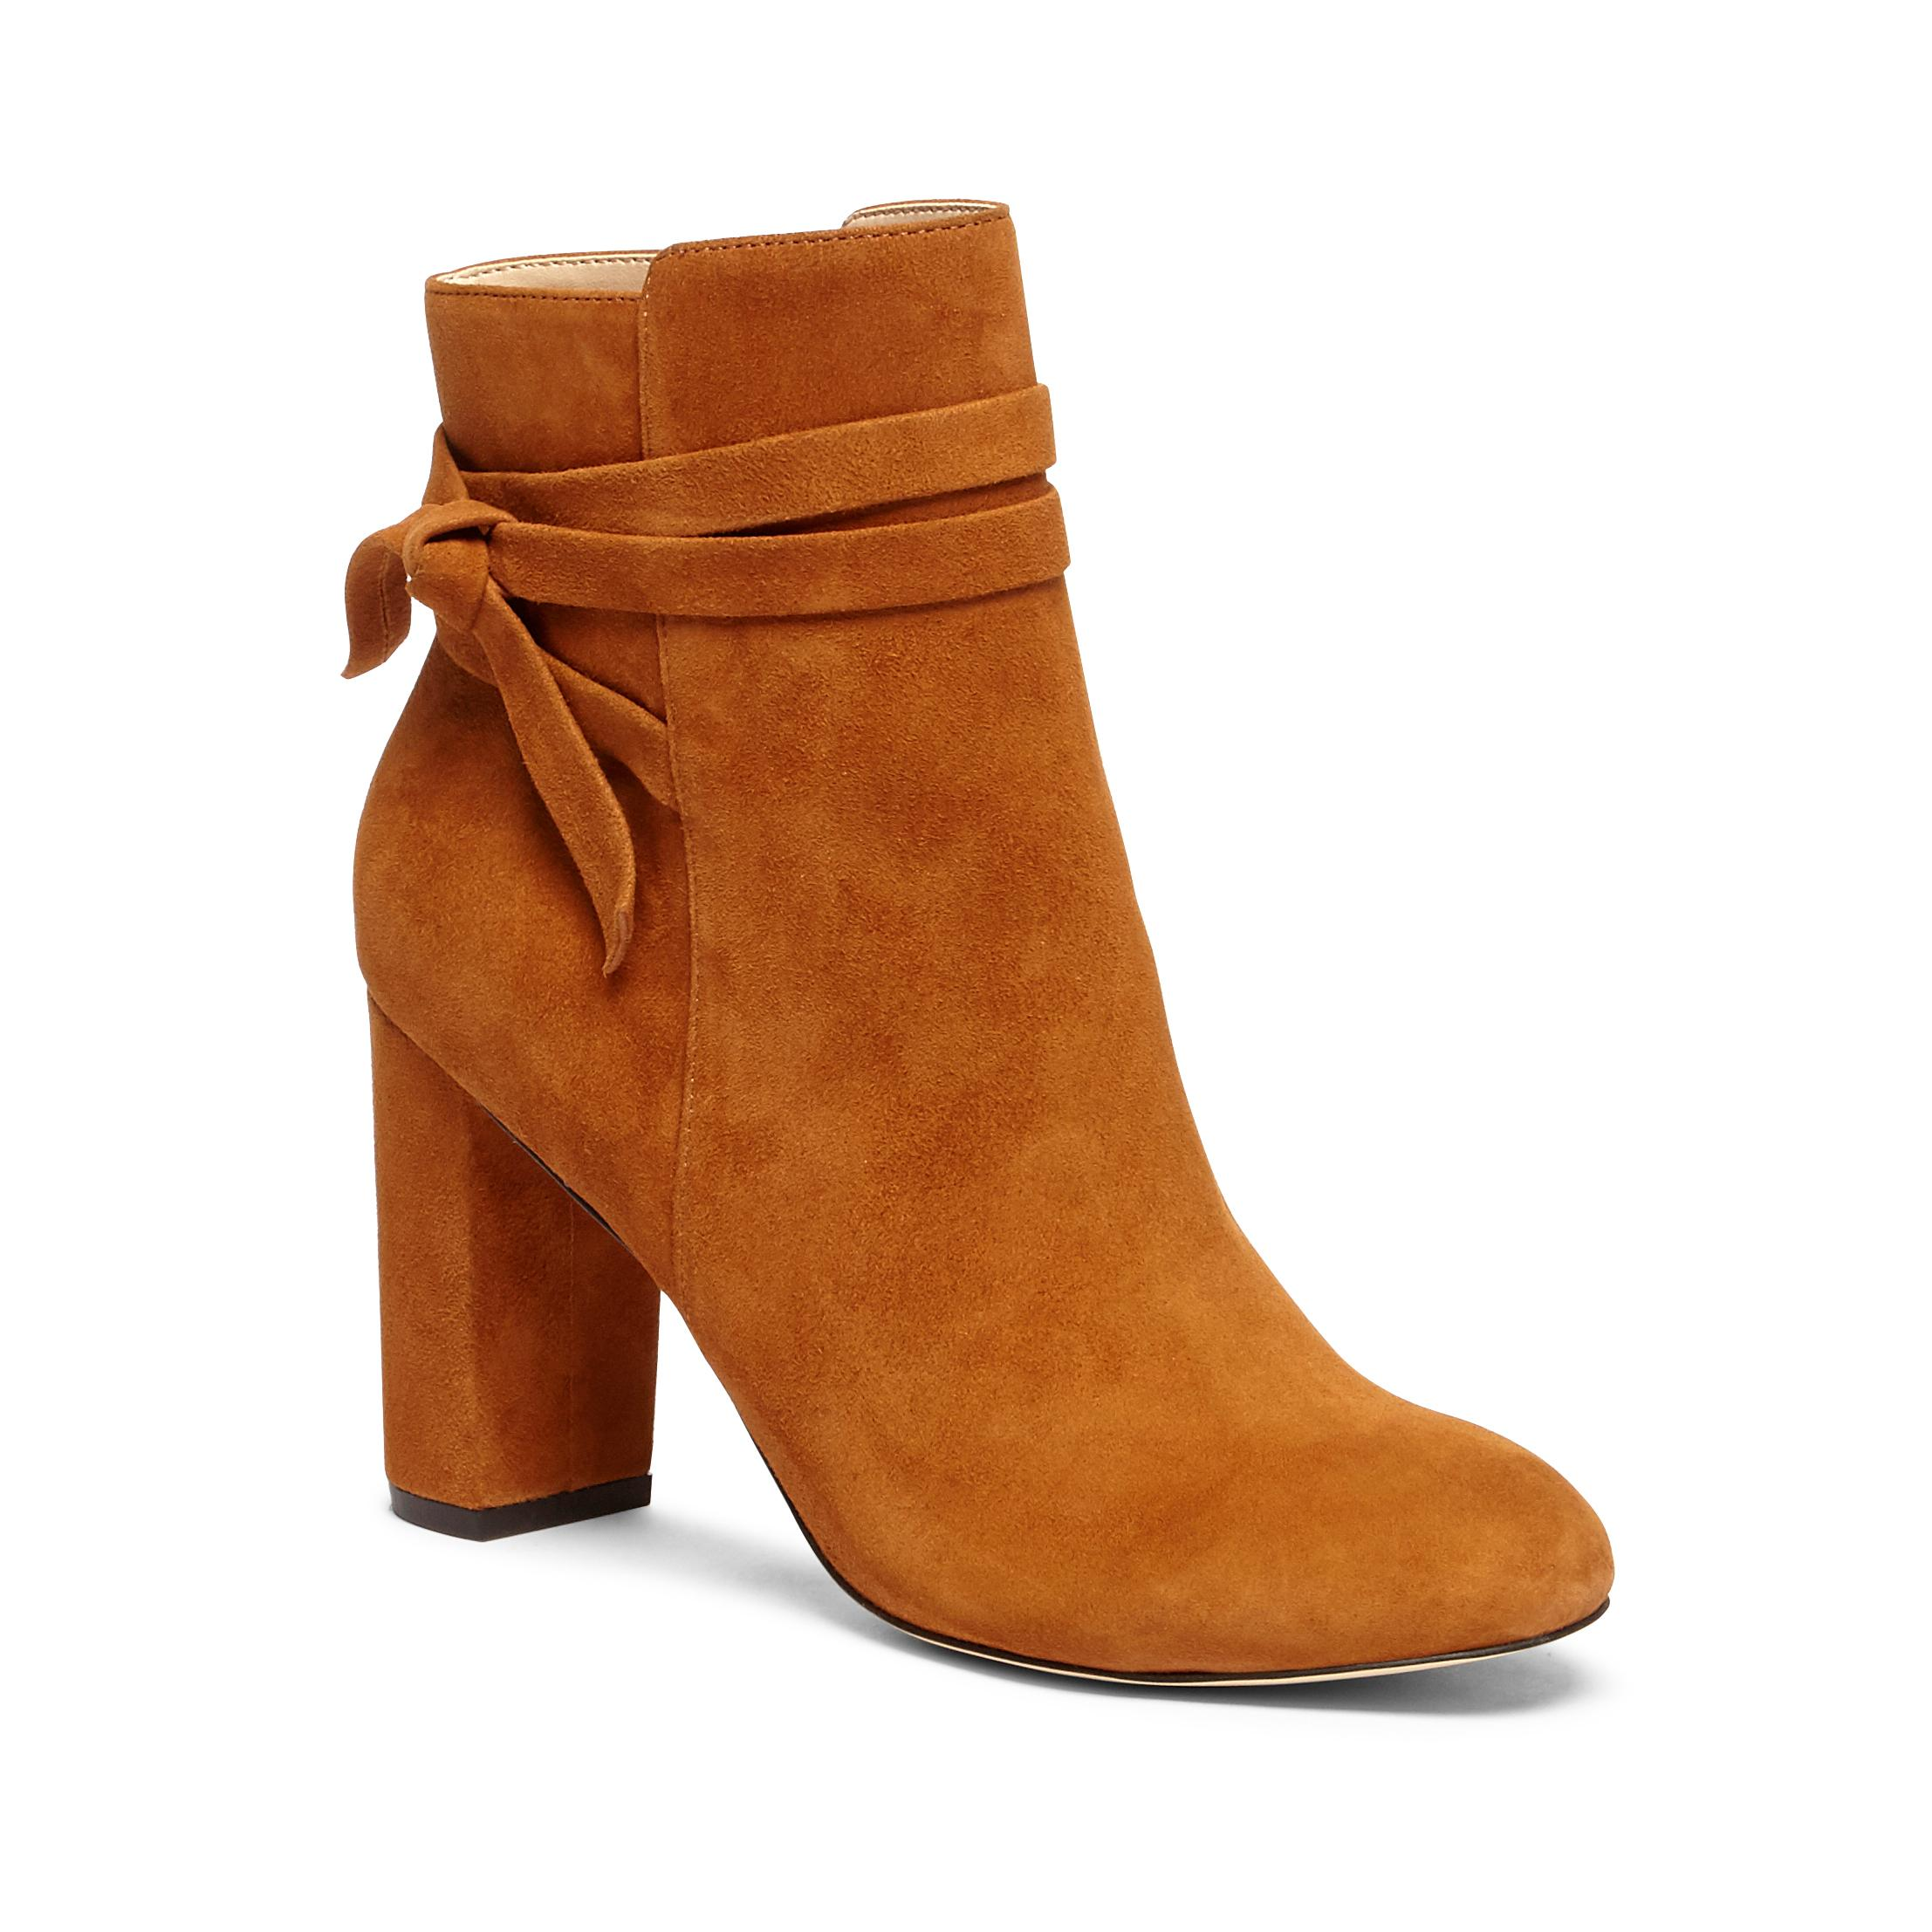 Sole Society Flynn Bootie – on sale for $43.98 // Solesociety.com (Photo courtesy: Sole Society)<p></p>